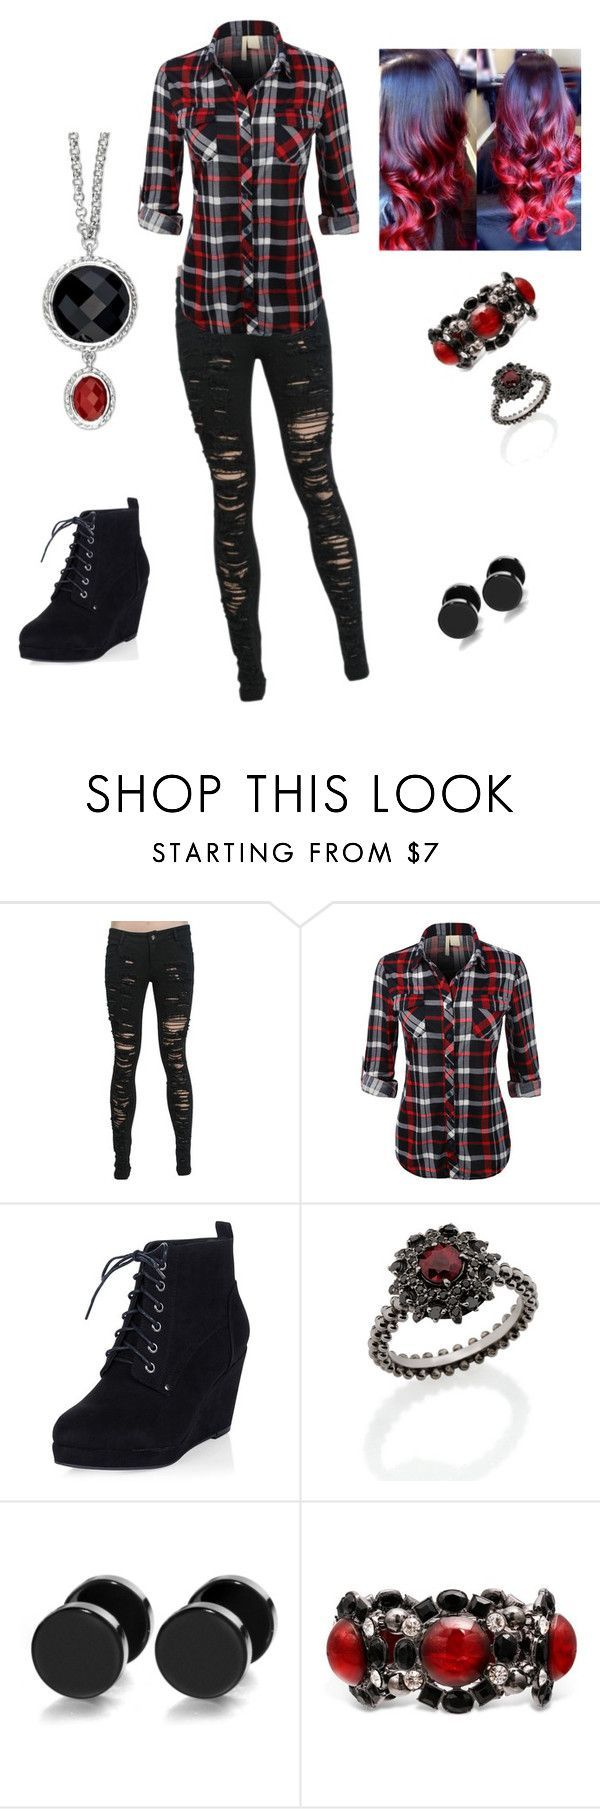 """Untitled #24"" by coffeeismysoul ❤️ liked on Polyvore featuring Carla Amorim"